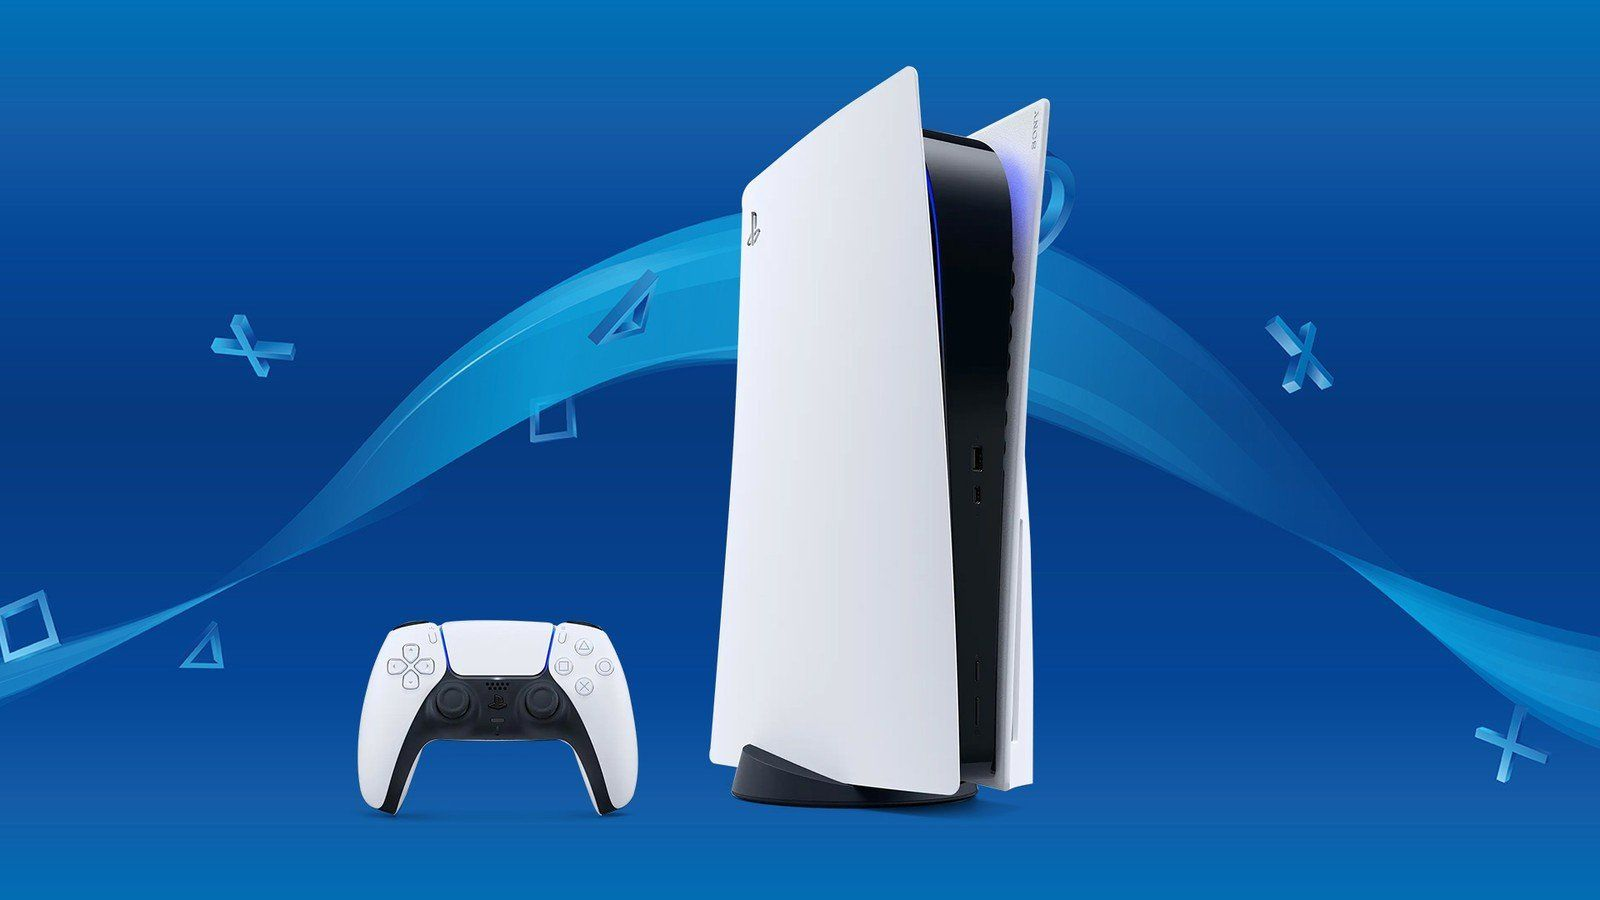 PS5 Wallpapers   Top PS5 Backgrounds   WallpaperAccess 1600x900